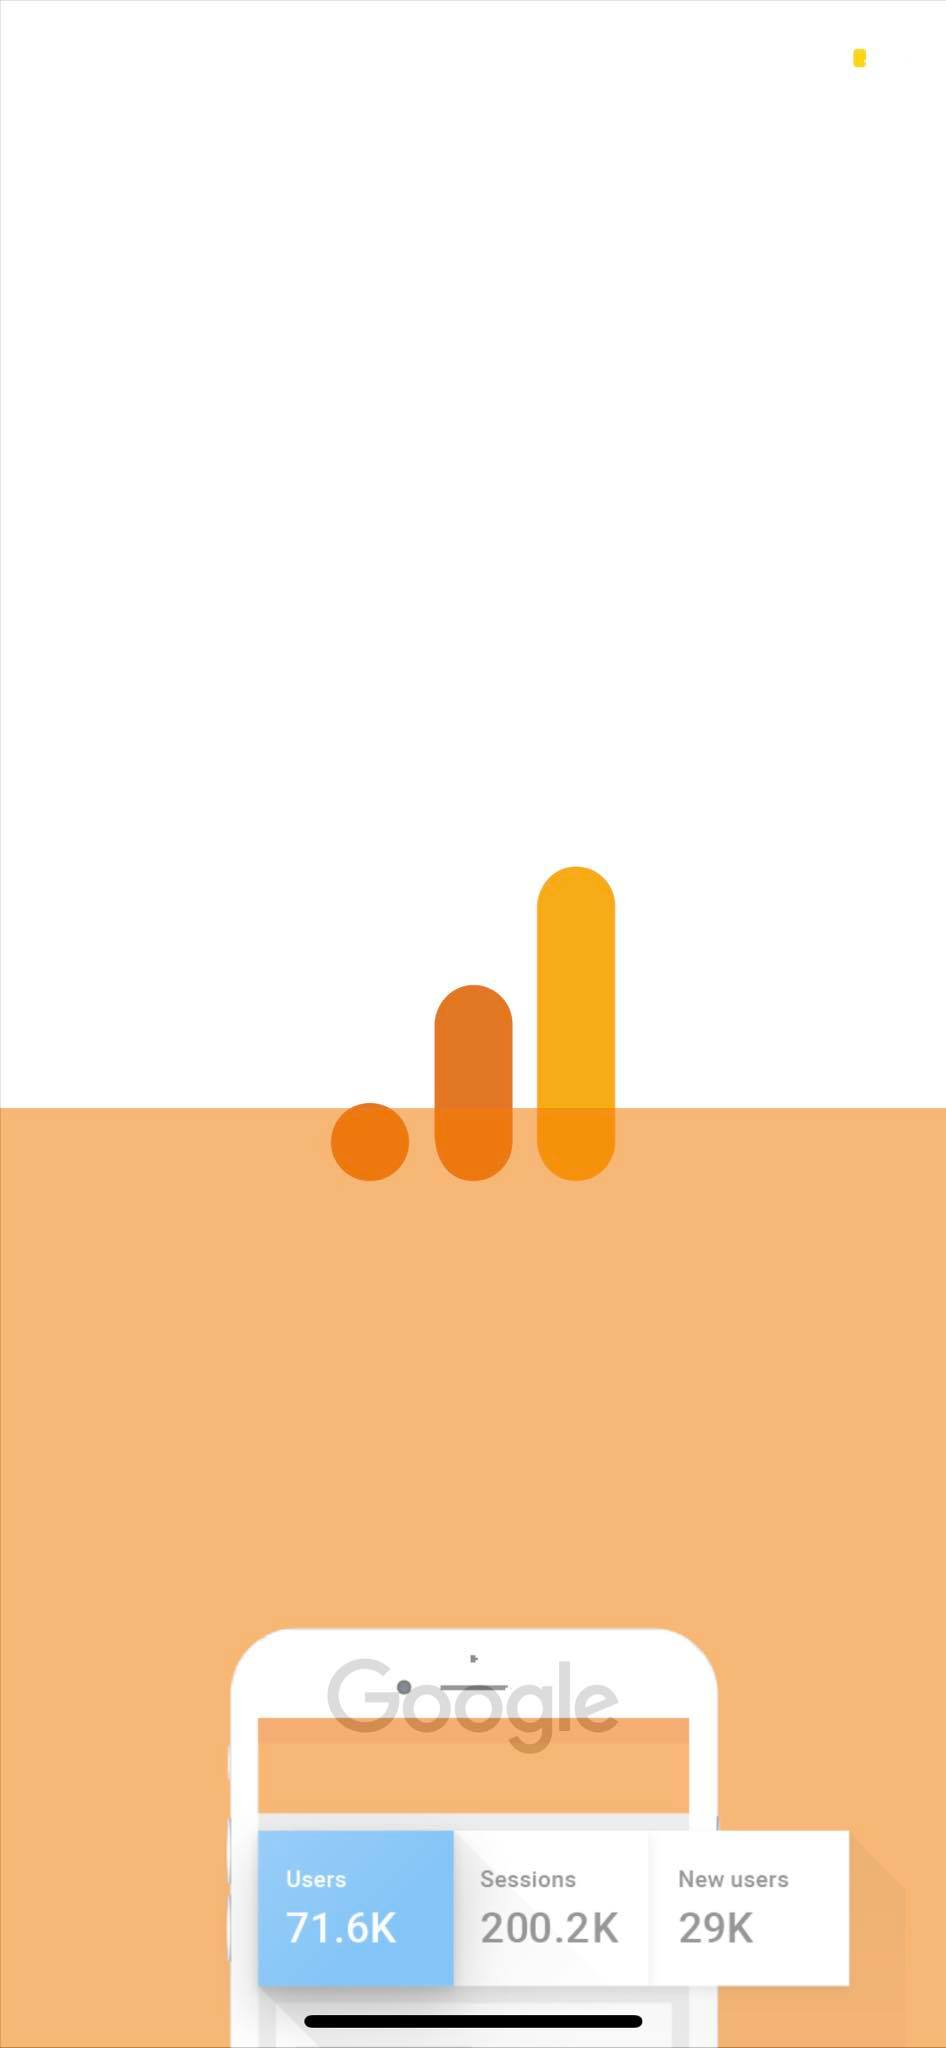 Launch Screen on iOS by Google Analytics from UIGarage